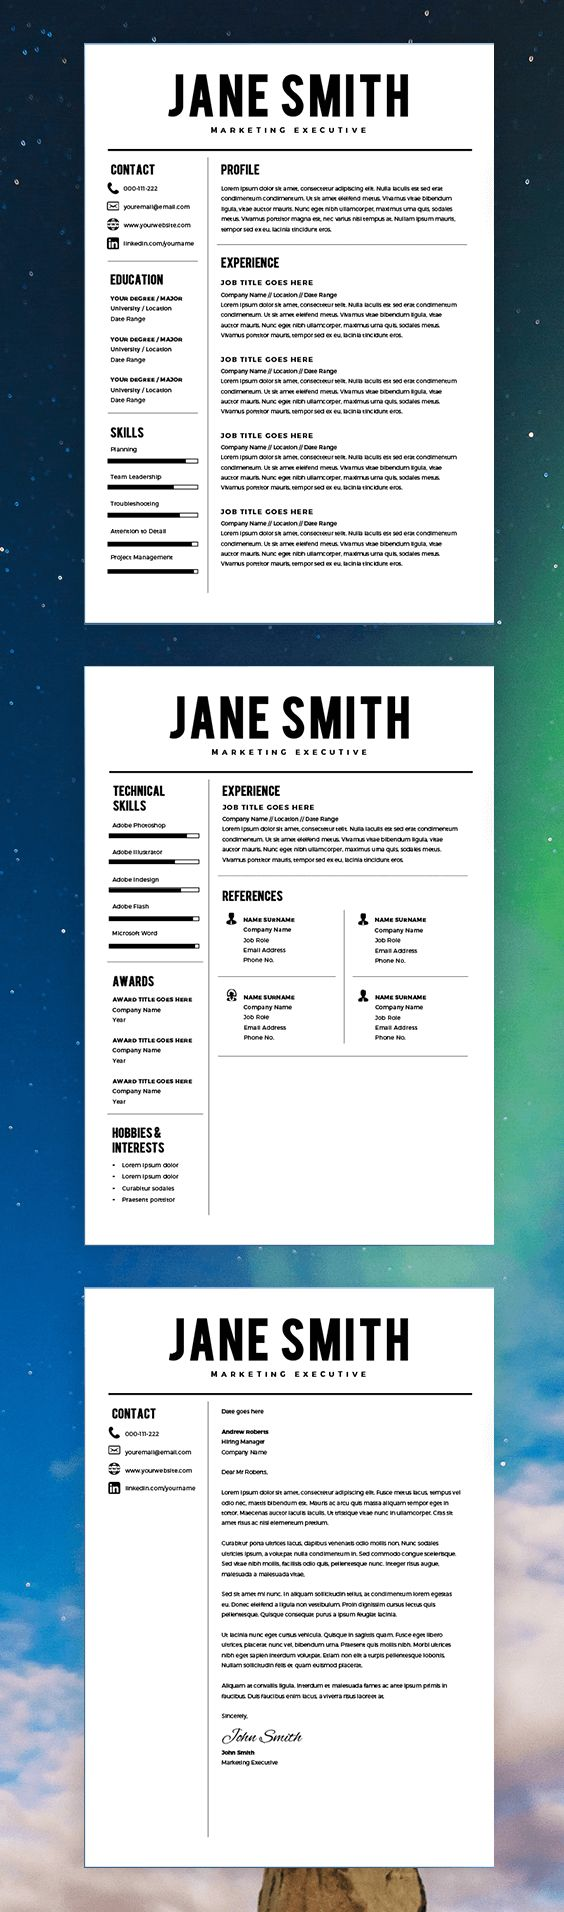 Best Creative Resume Business Cards Social Media Marketing